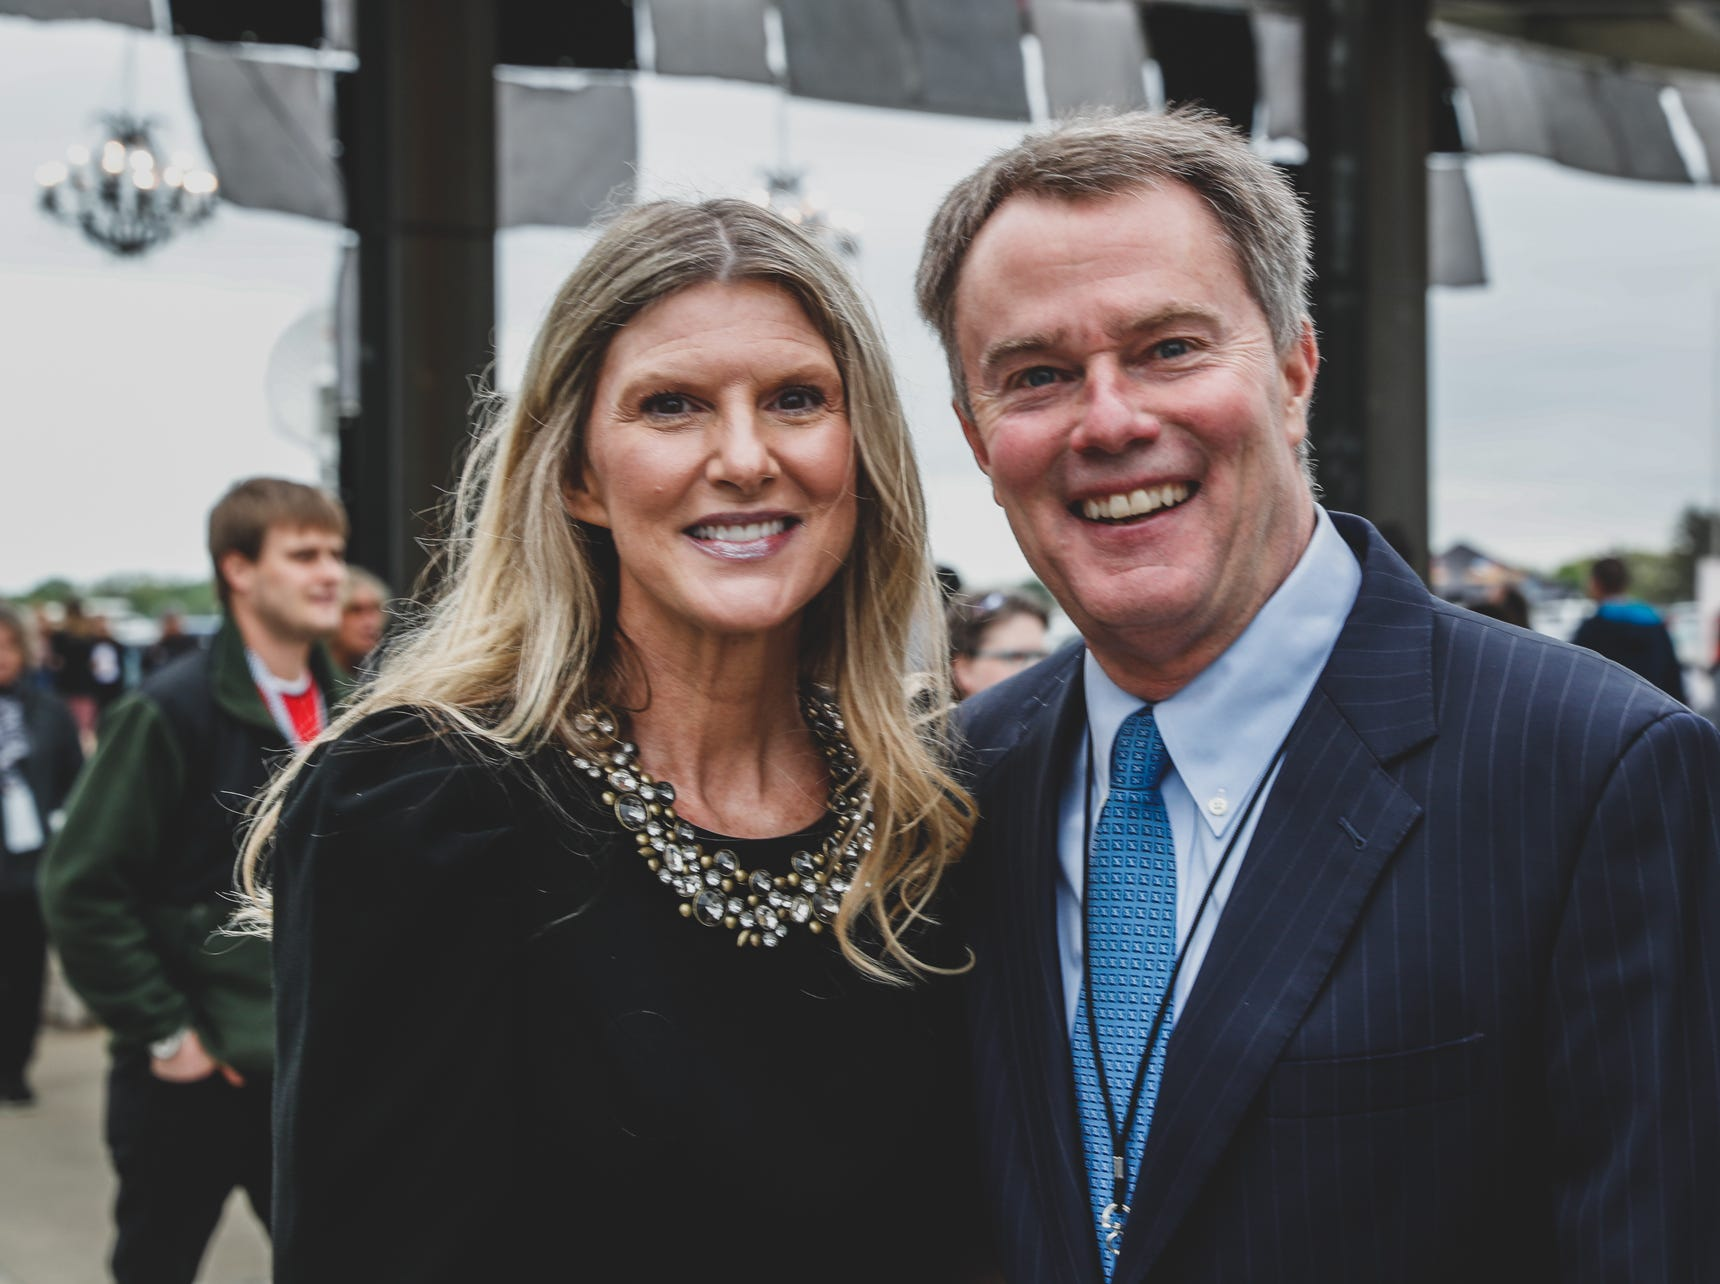 Indianapolis Mayor Joe Hogsett and his wife Stephanie Hogsett attend the Rev Indy fundraiser, held at the Indianapolis Motor Speedway on Saturday, May 4, 2019. Funds raised support the IU Health Foundation statewide and the IU Health Emergency Medical Center at IMS.